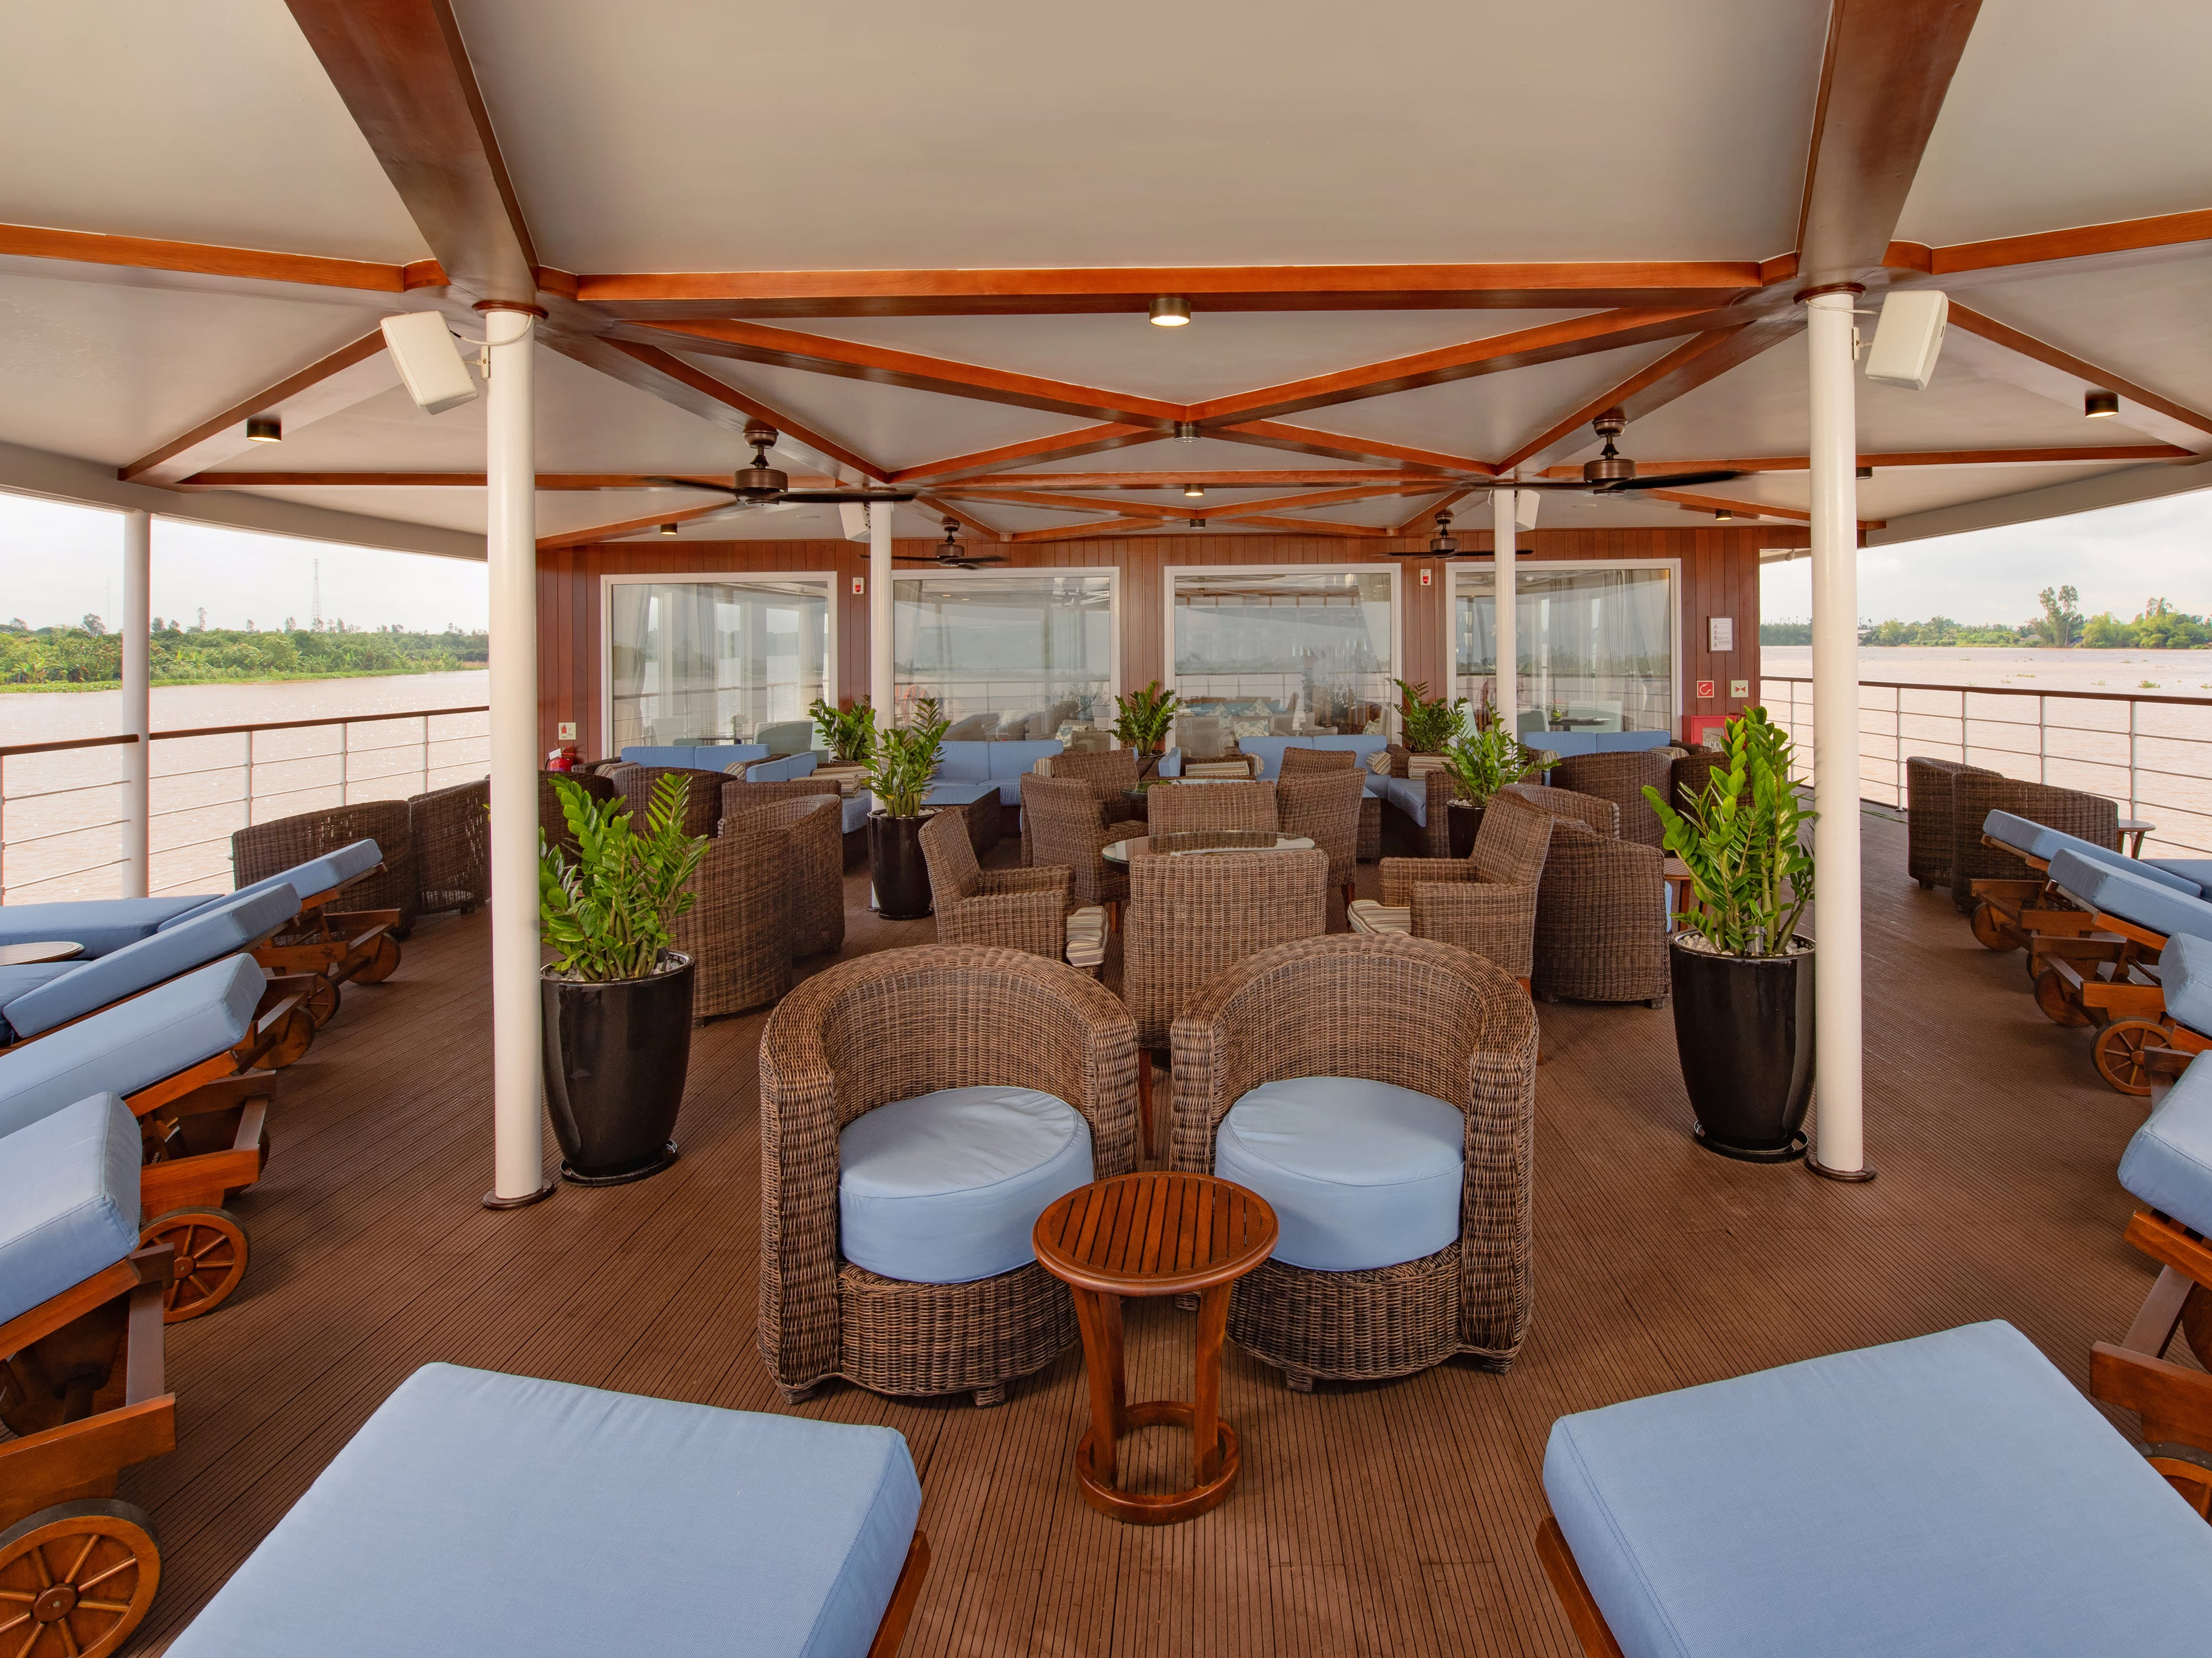 Designed for just 36 passengers, Avalon Saigon is one of the most intimate cruise vessels on the Mekong River. It travels the Mekong through parts of Vietnam and Cambodia.